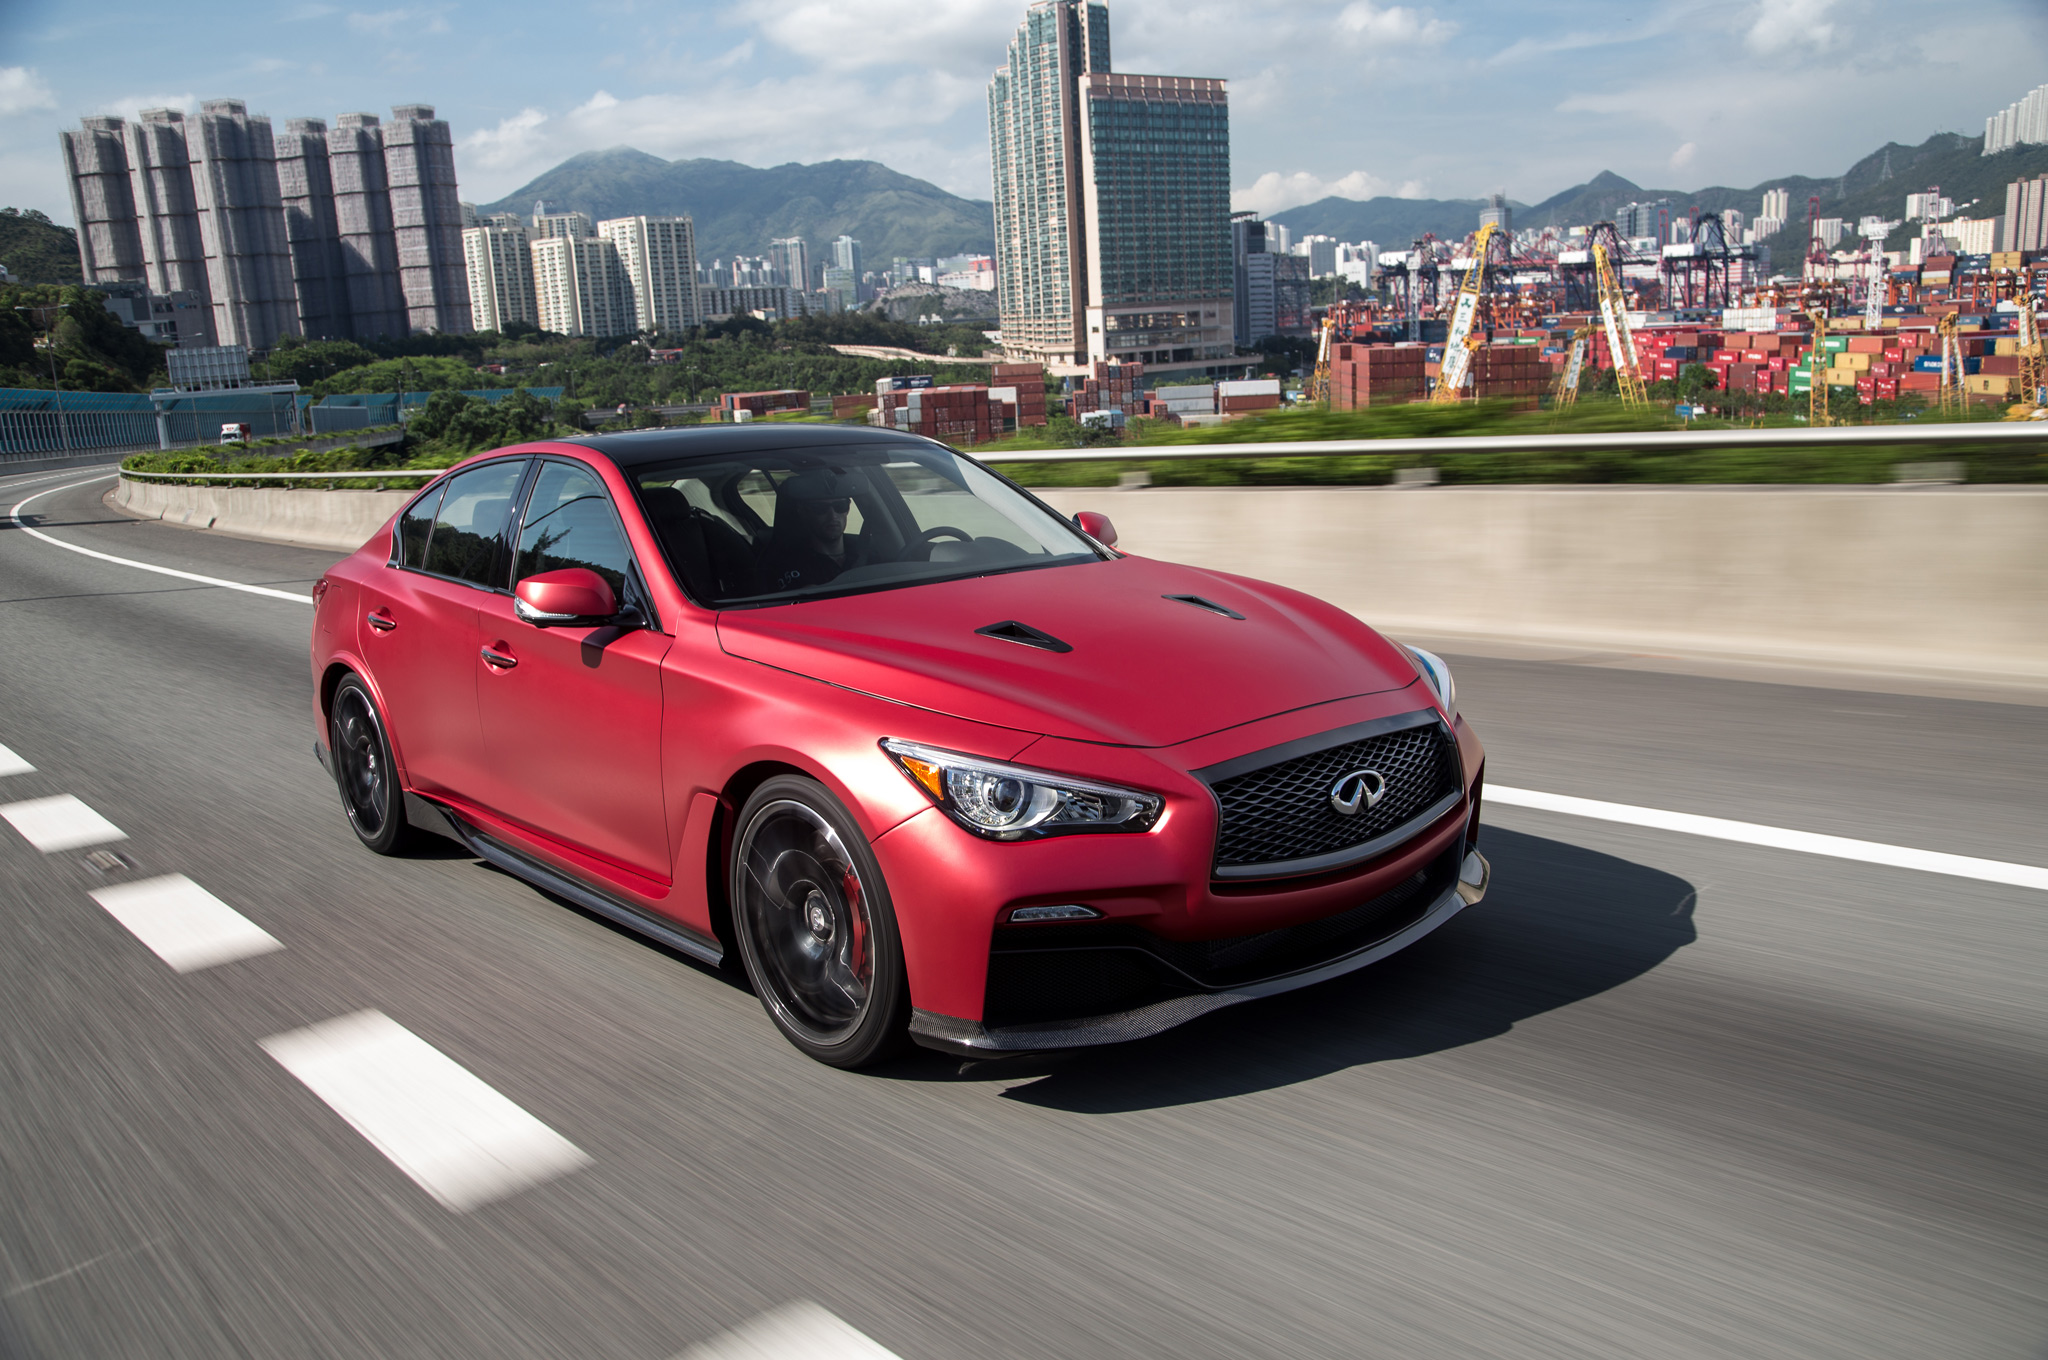 560-hp Infiniti Q50 Eau Rouge Could Cost $100,000; Spawn 3 New Models